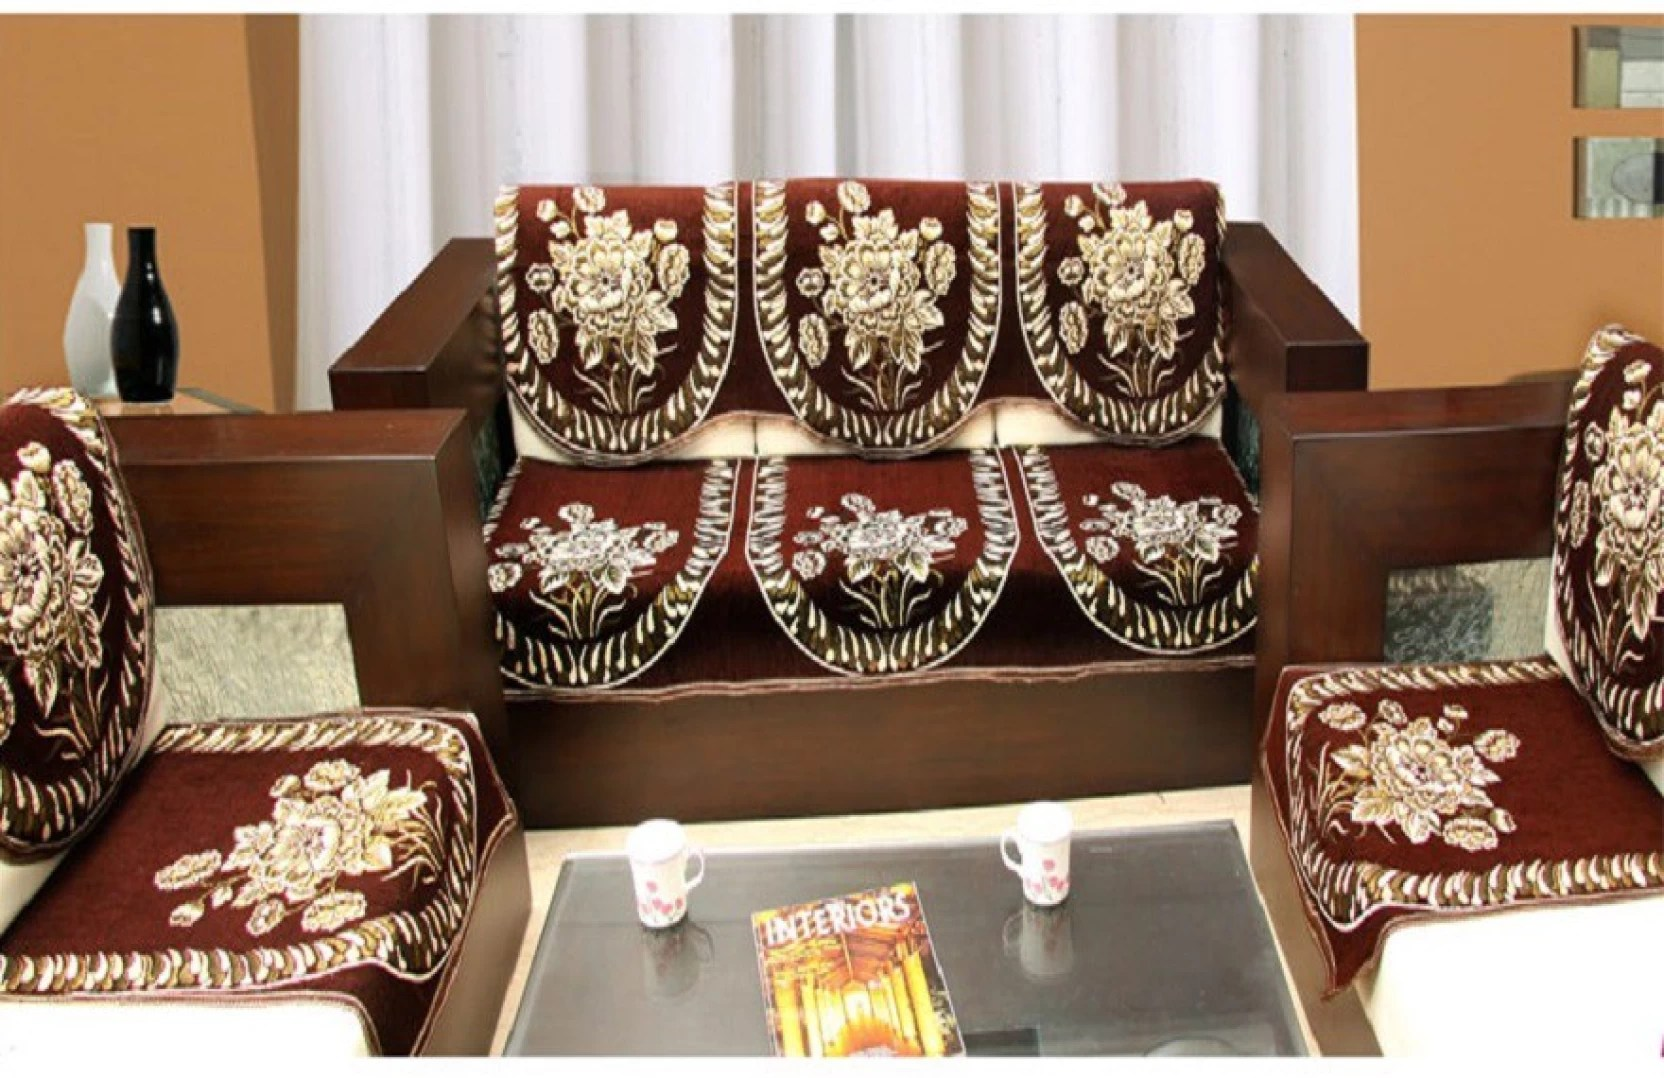 online sofa covers india round daybed zesture jacquard cover price in buy